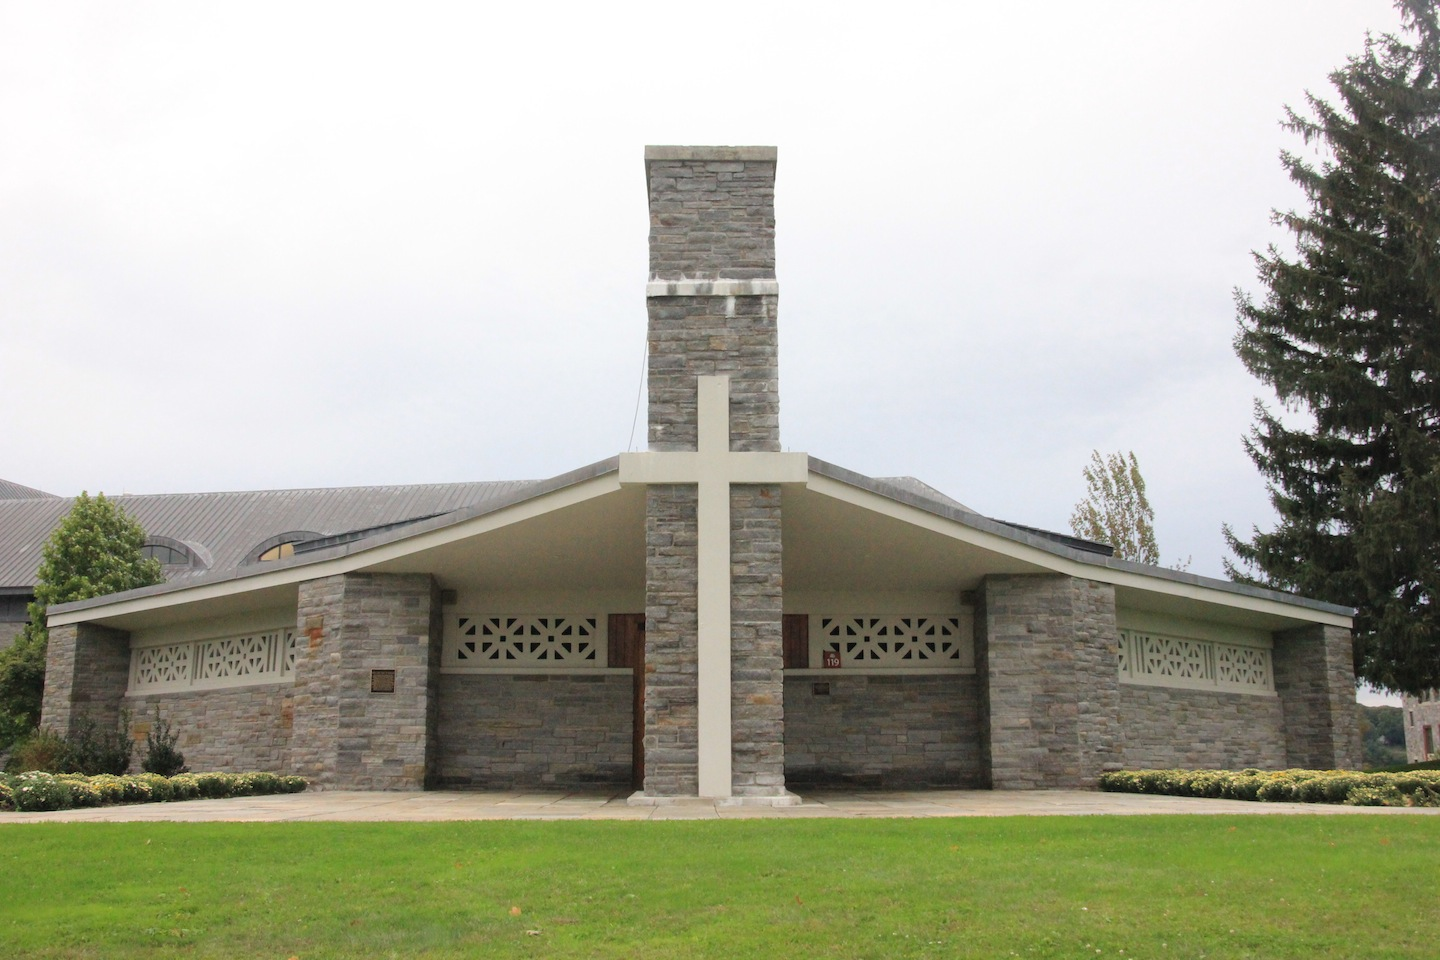 The 'Our Lady Seat of Wisdom Chapel' sits at the heart of the Marist campus. Services are held five days a week.